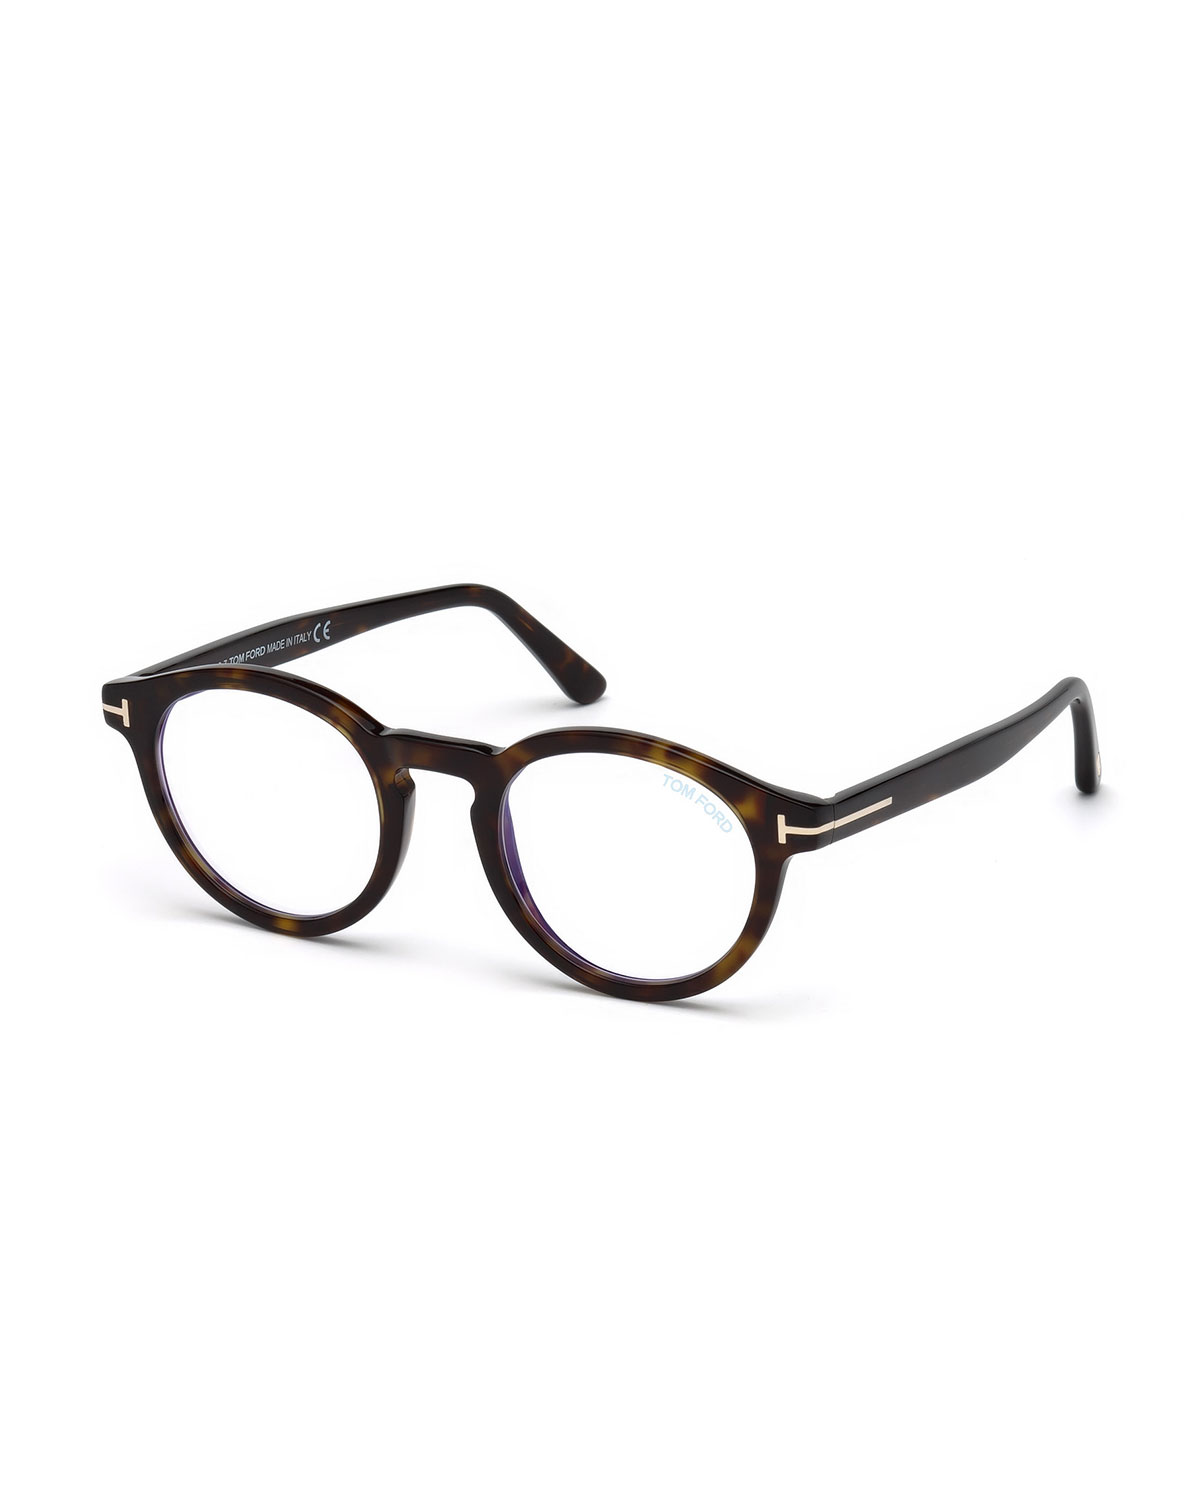 dded9ebaba0b TOM FORD Men s Blue Light-Blocking Round Acetate Optical Glasses ...